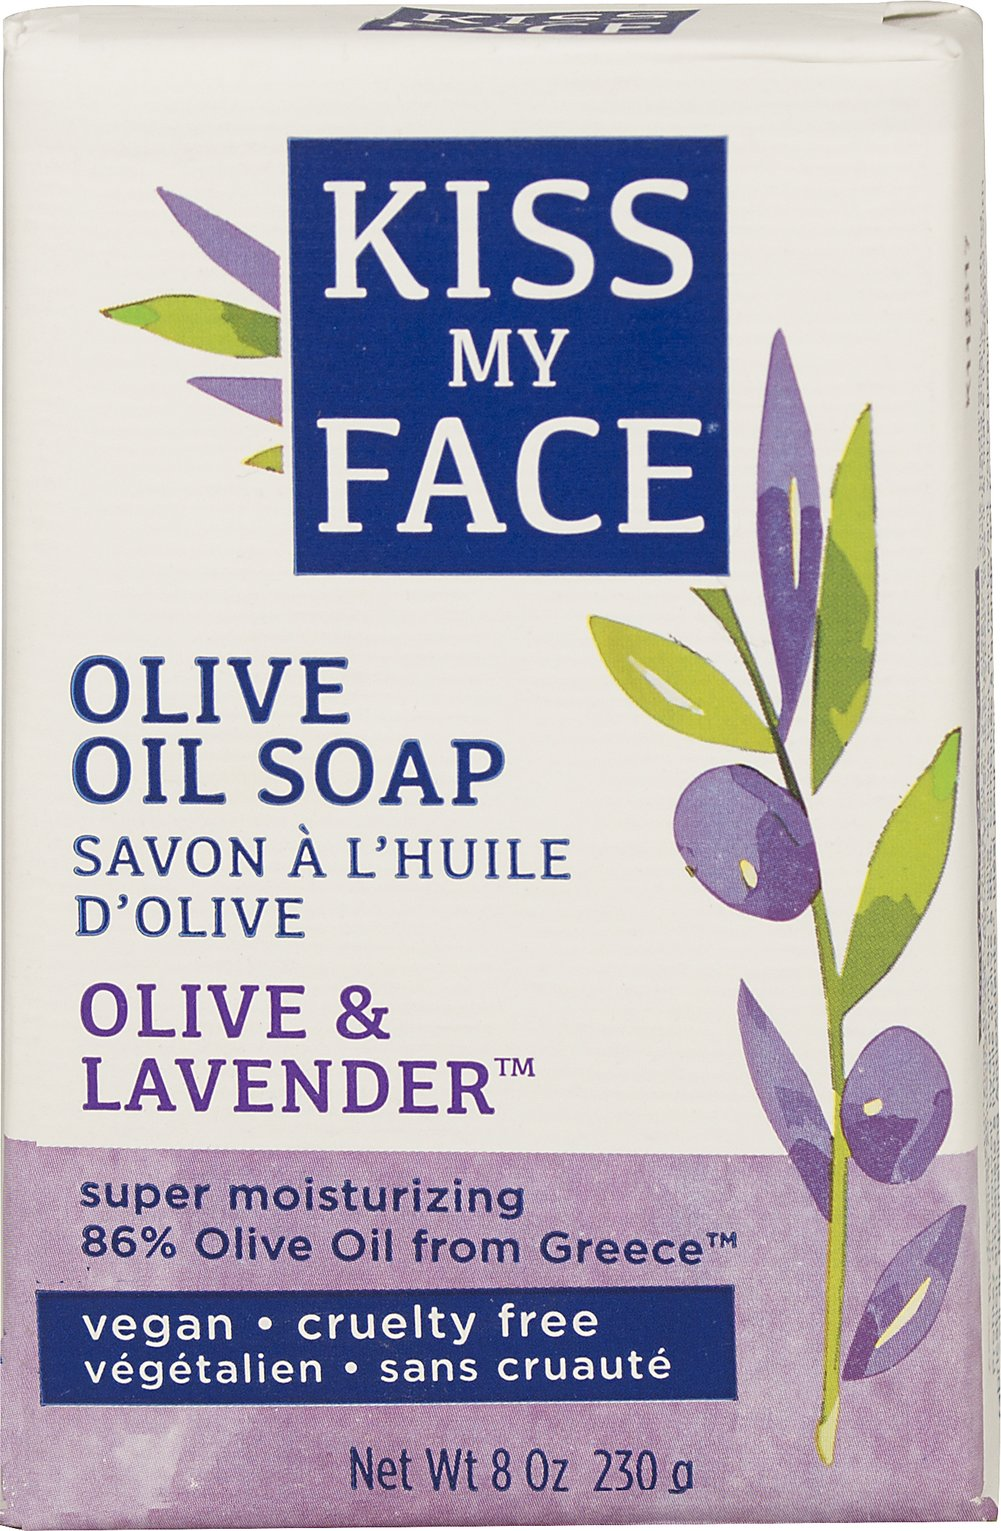 Kiss My Face Olive & Lavender Bar Soap <p><strong>From the Manufacturer's Label:</strong></p><p>- No Phthalates</p><p>- No Artificial Color</p><p>- Biodegradable</p><p>- Gluten Free</p><p>- No Animal Ingredients</p><p>- No Animal Testing</p> 8 oz Bar  $2.99